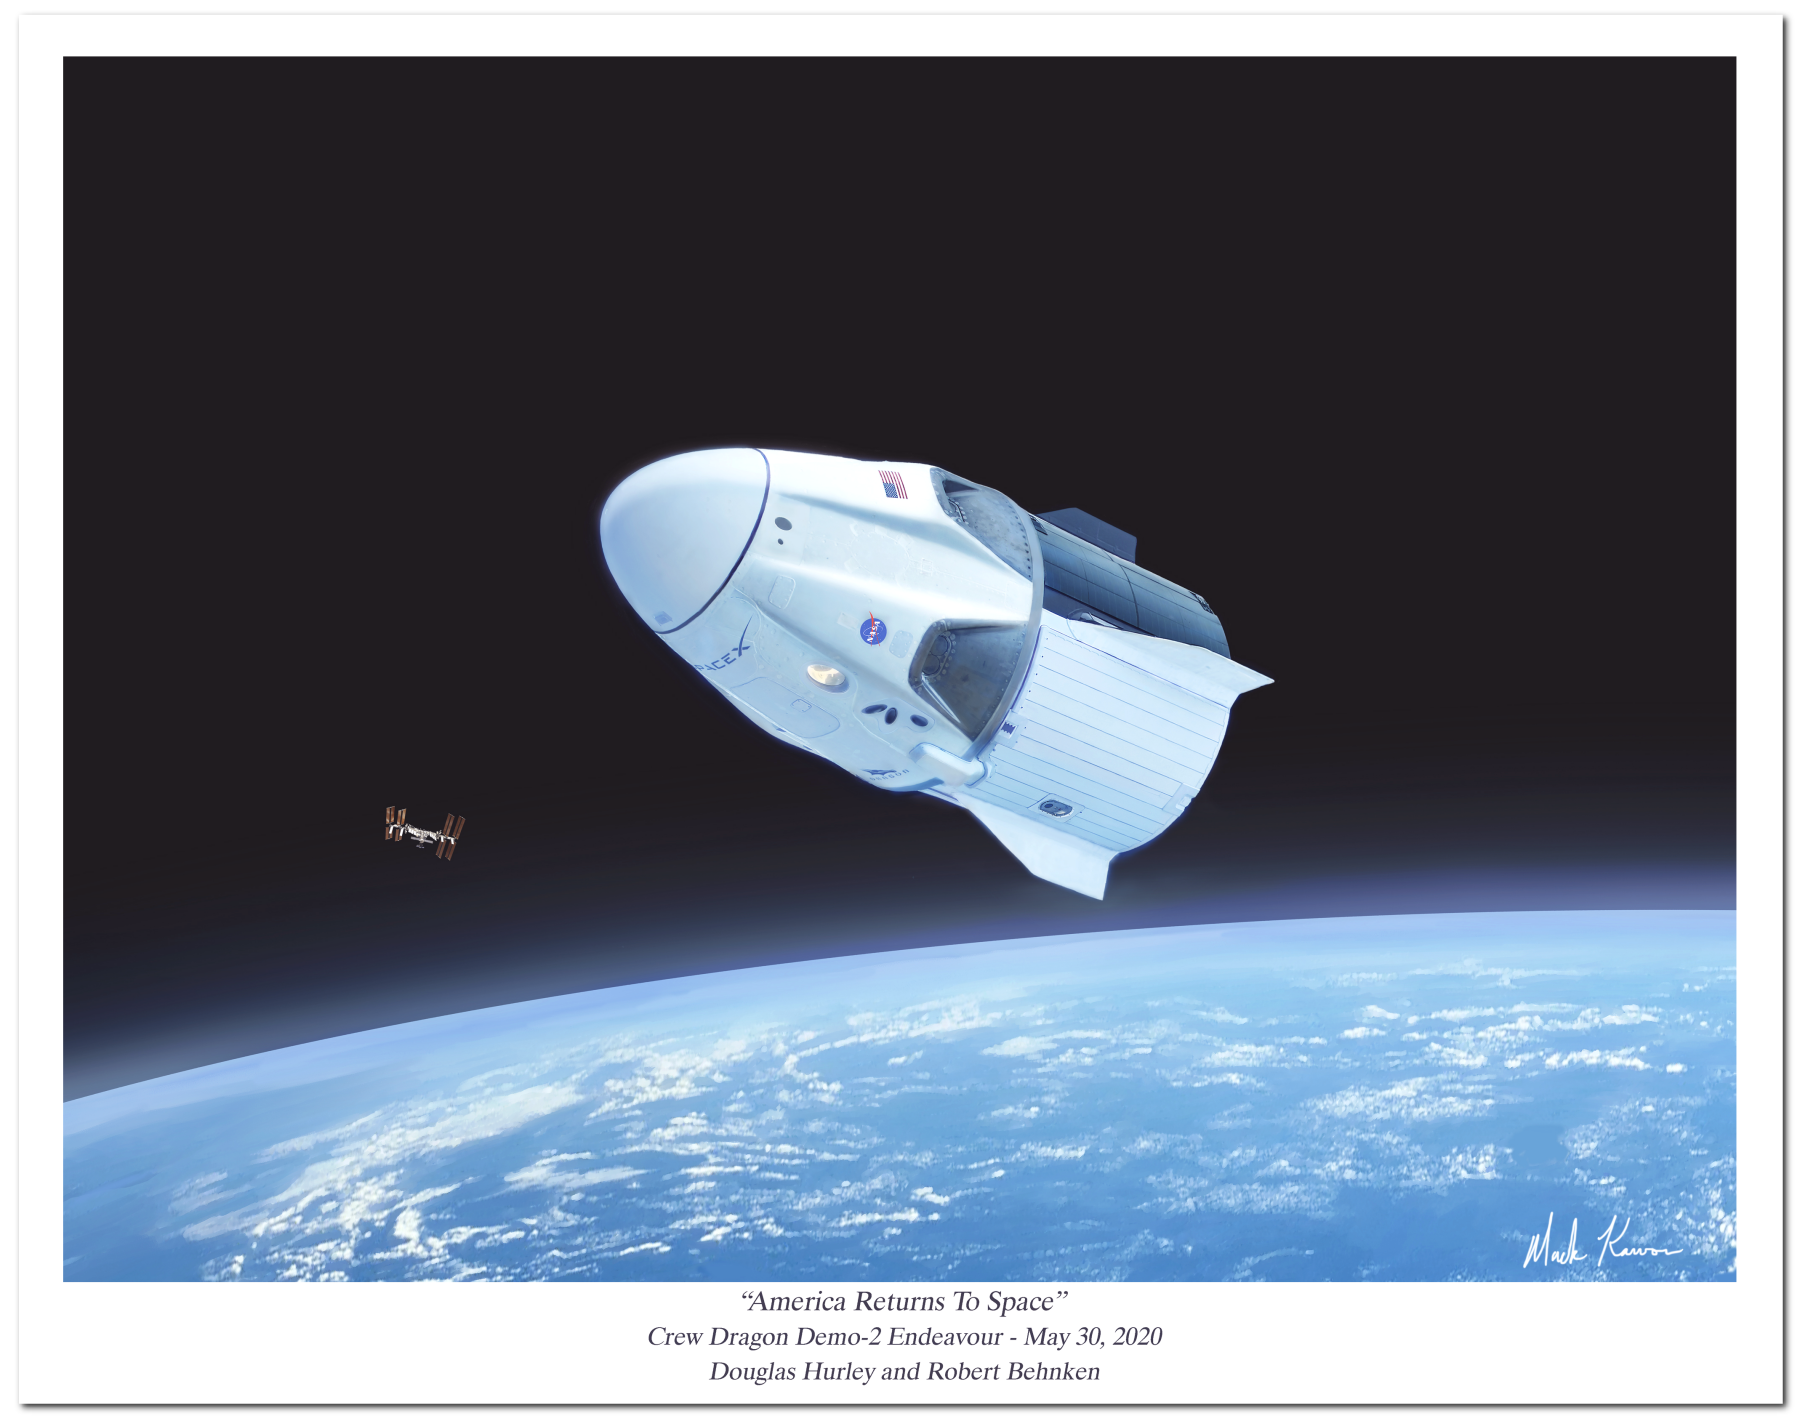 """America Returns to Space"" by Mark Karvon featuring the SpaceX Crew Dragon 2 Demo-2 Endeavour"